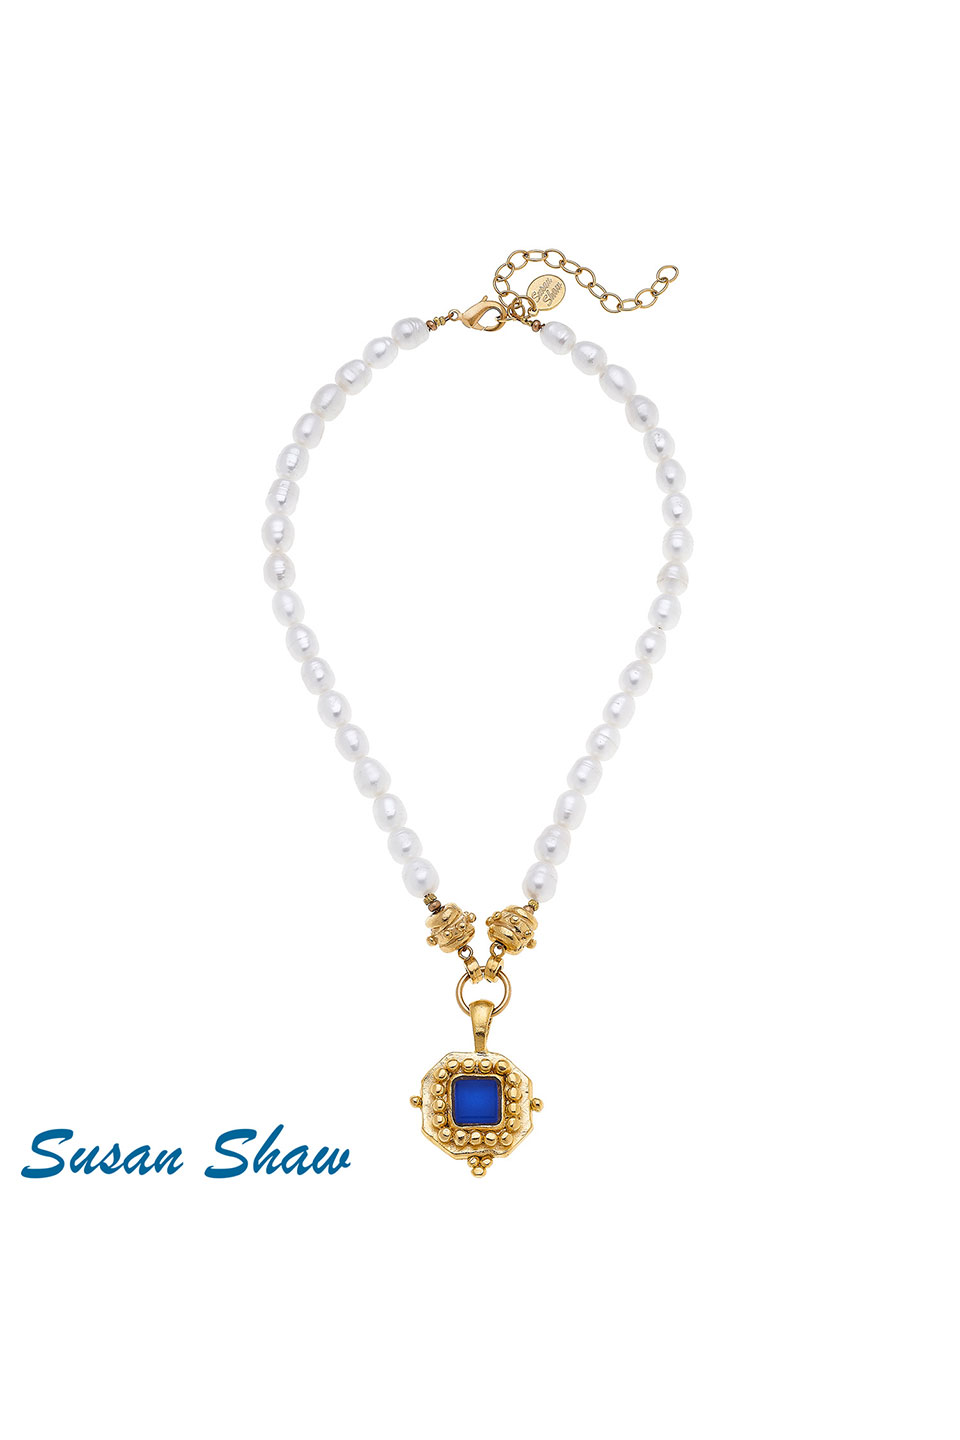 Susan Shaw Handcast Gold Square witlh Blue French Glass on Genuine Pearl Necklace